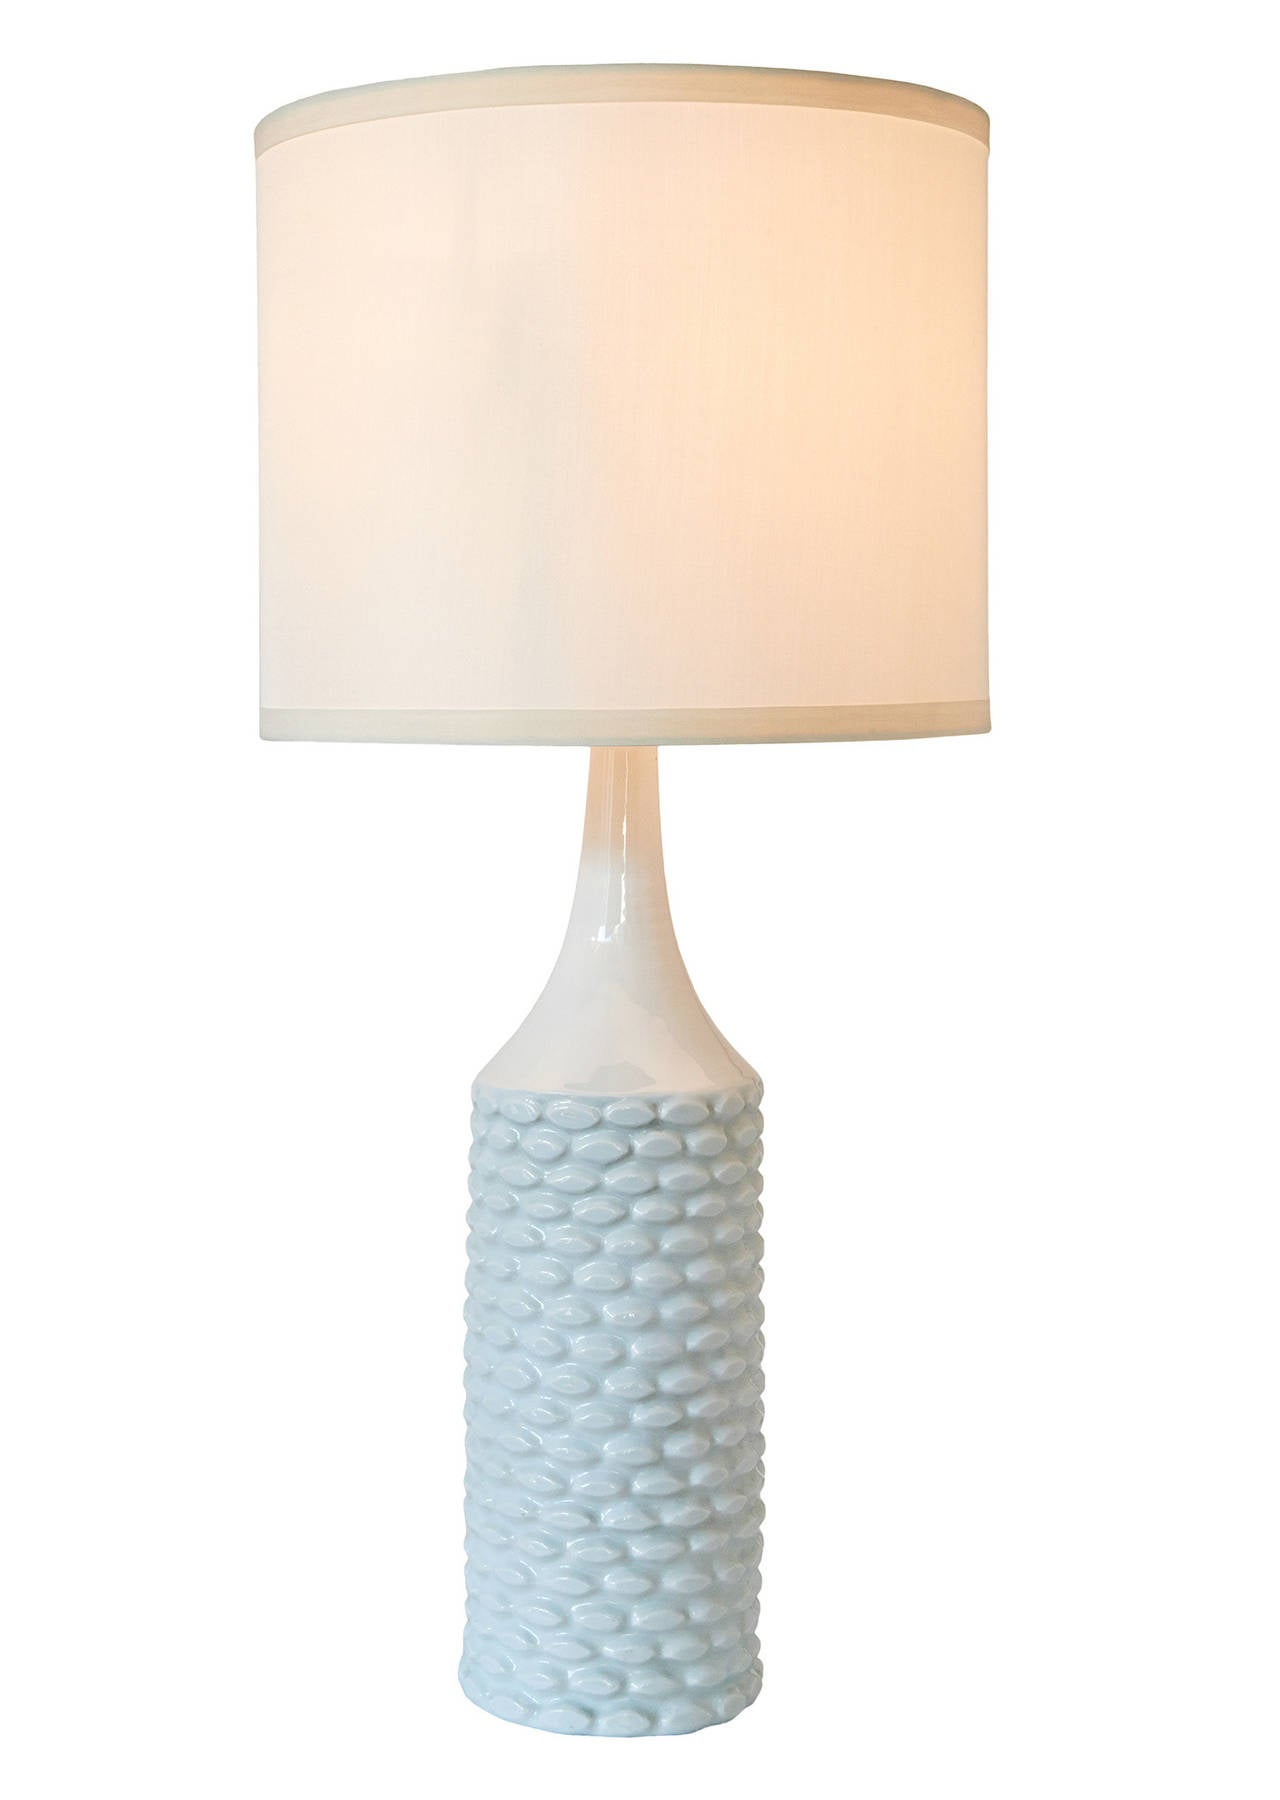 1940 Table Lamp by Axel Salto 3